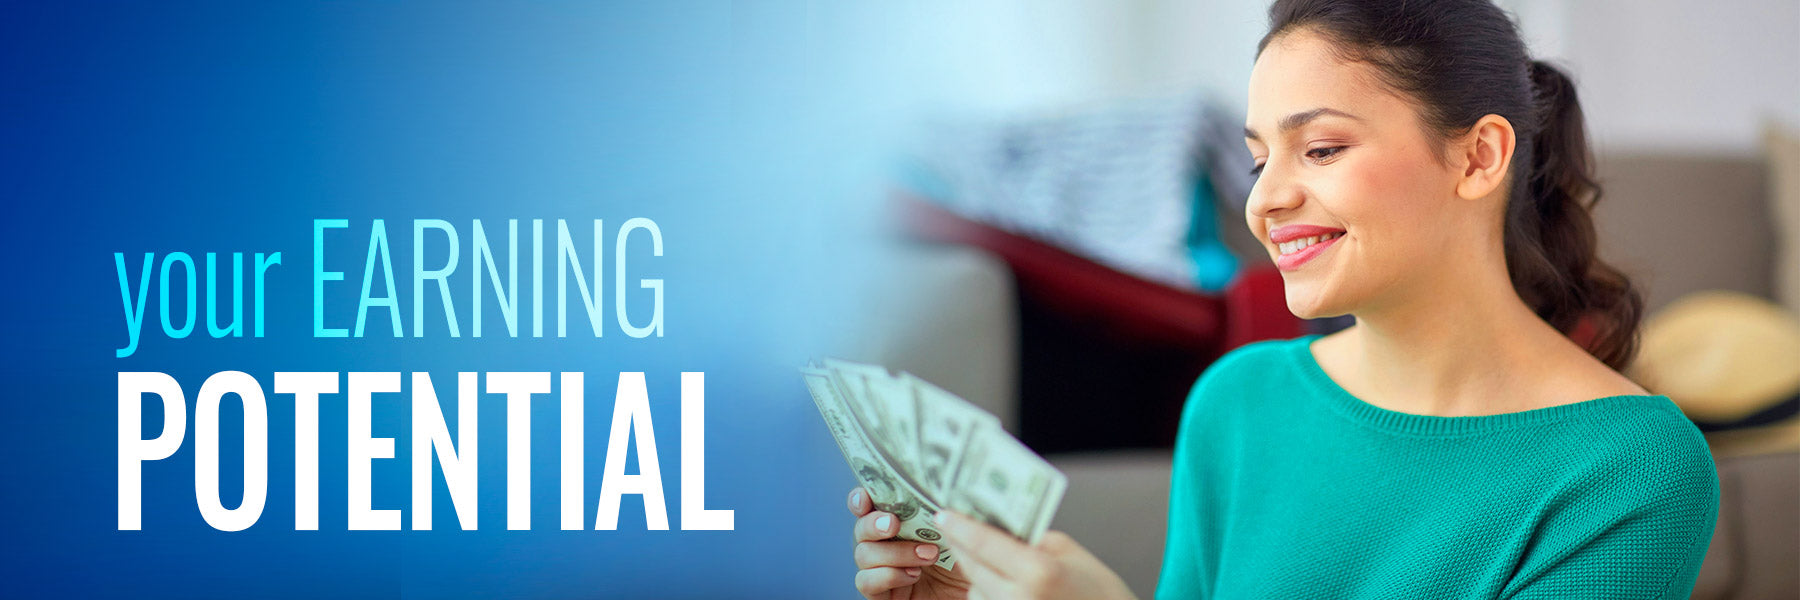 Your Earning Potential Intima